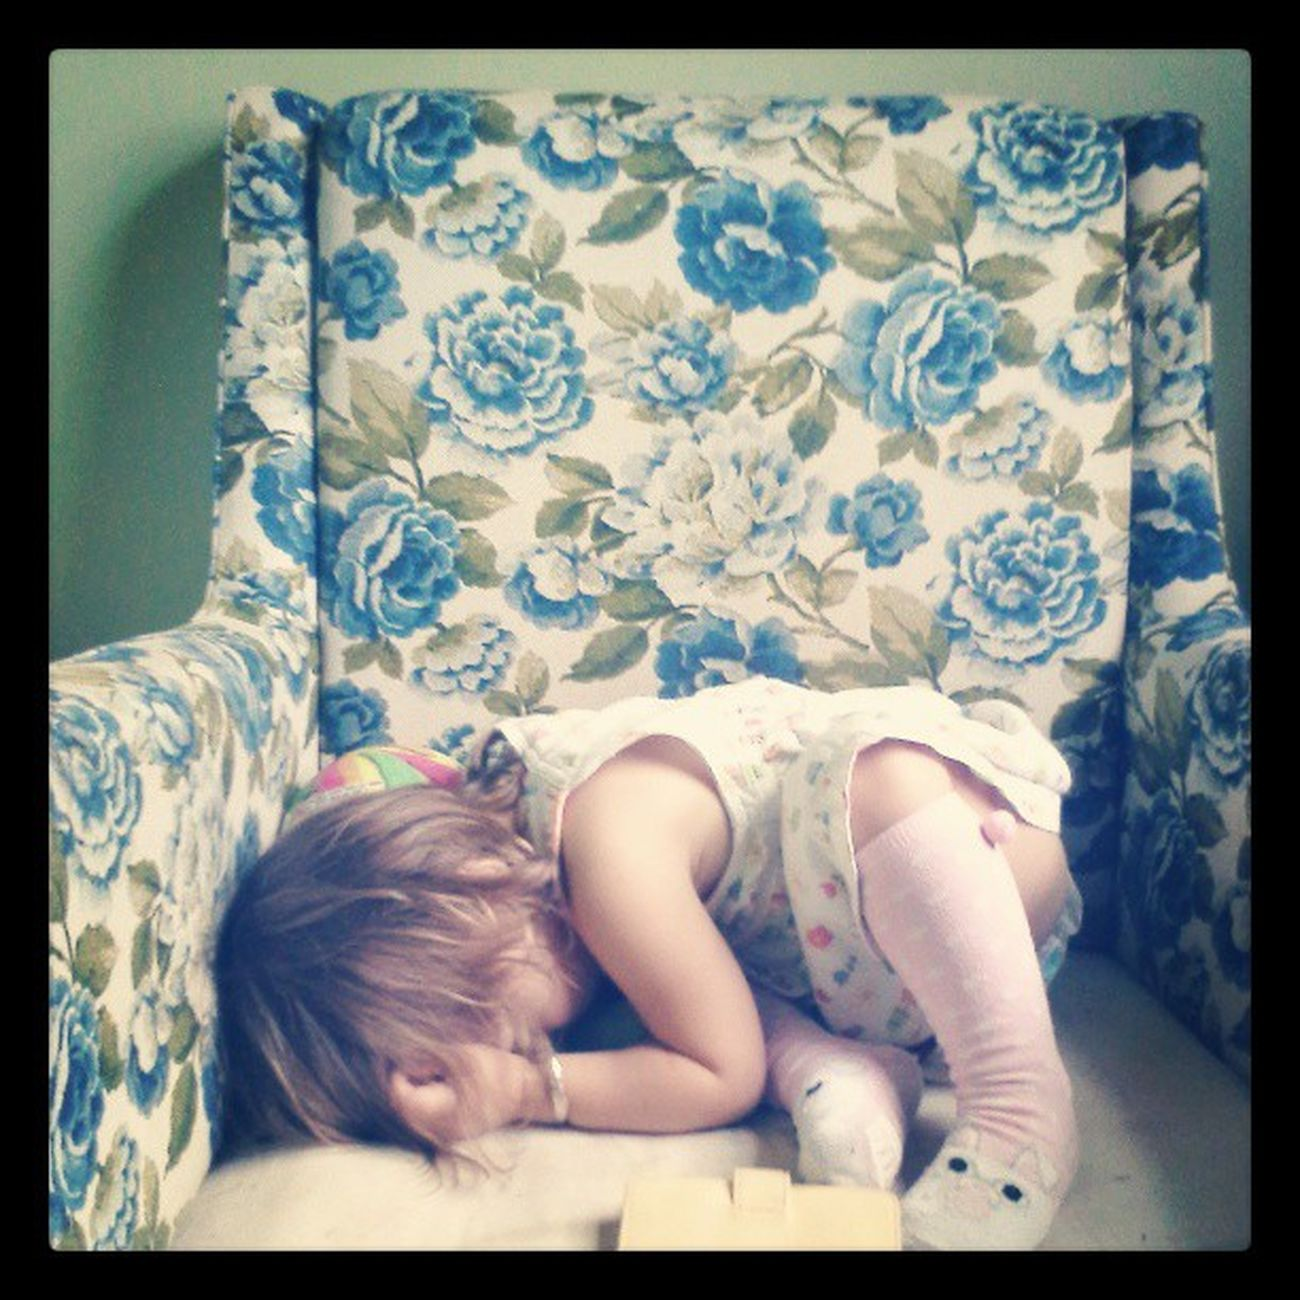 Probably the cutest thing ever.. Found her sleeping like this. :-! Now im gonna steal her n nap with her. Lovemymiah